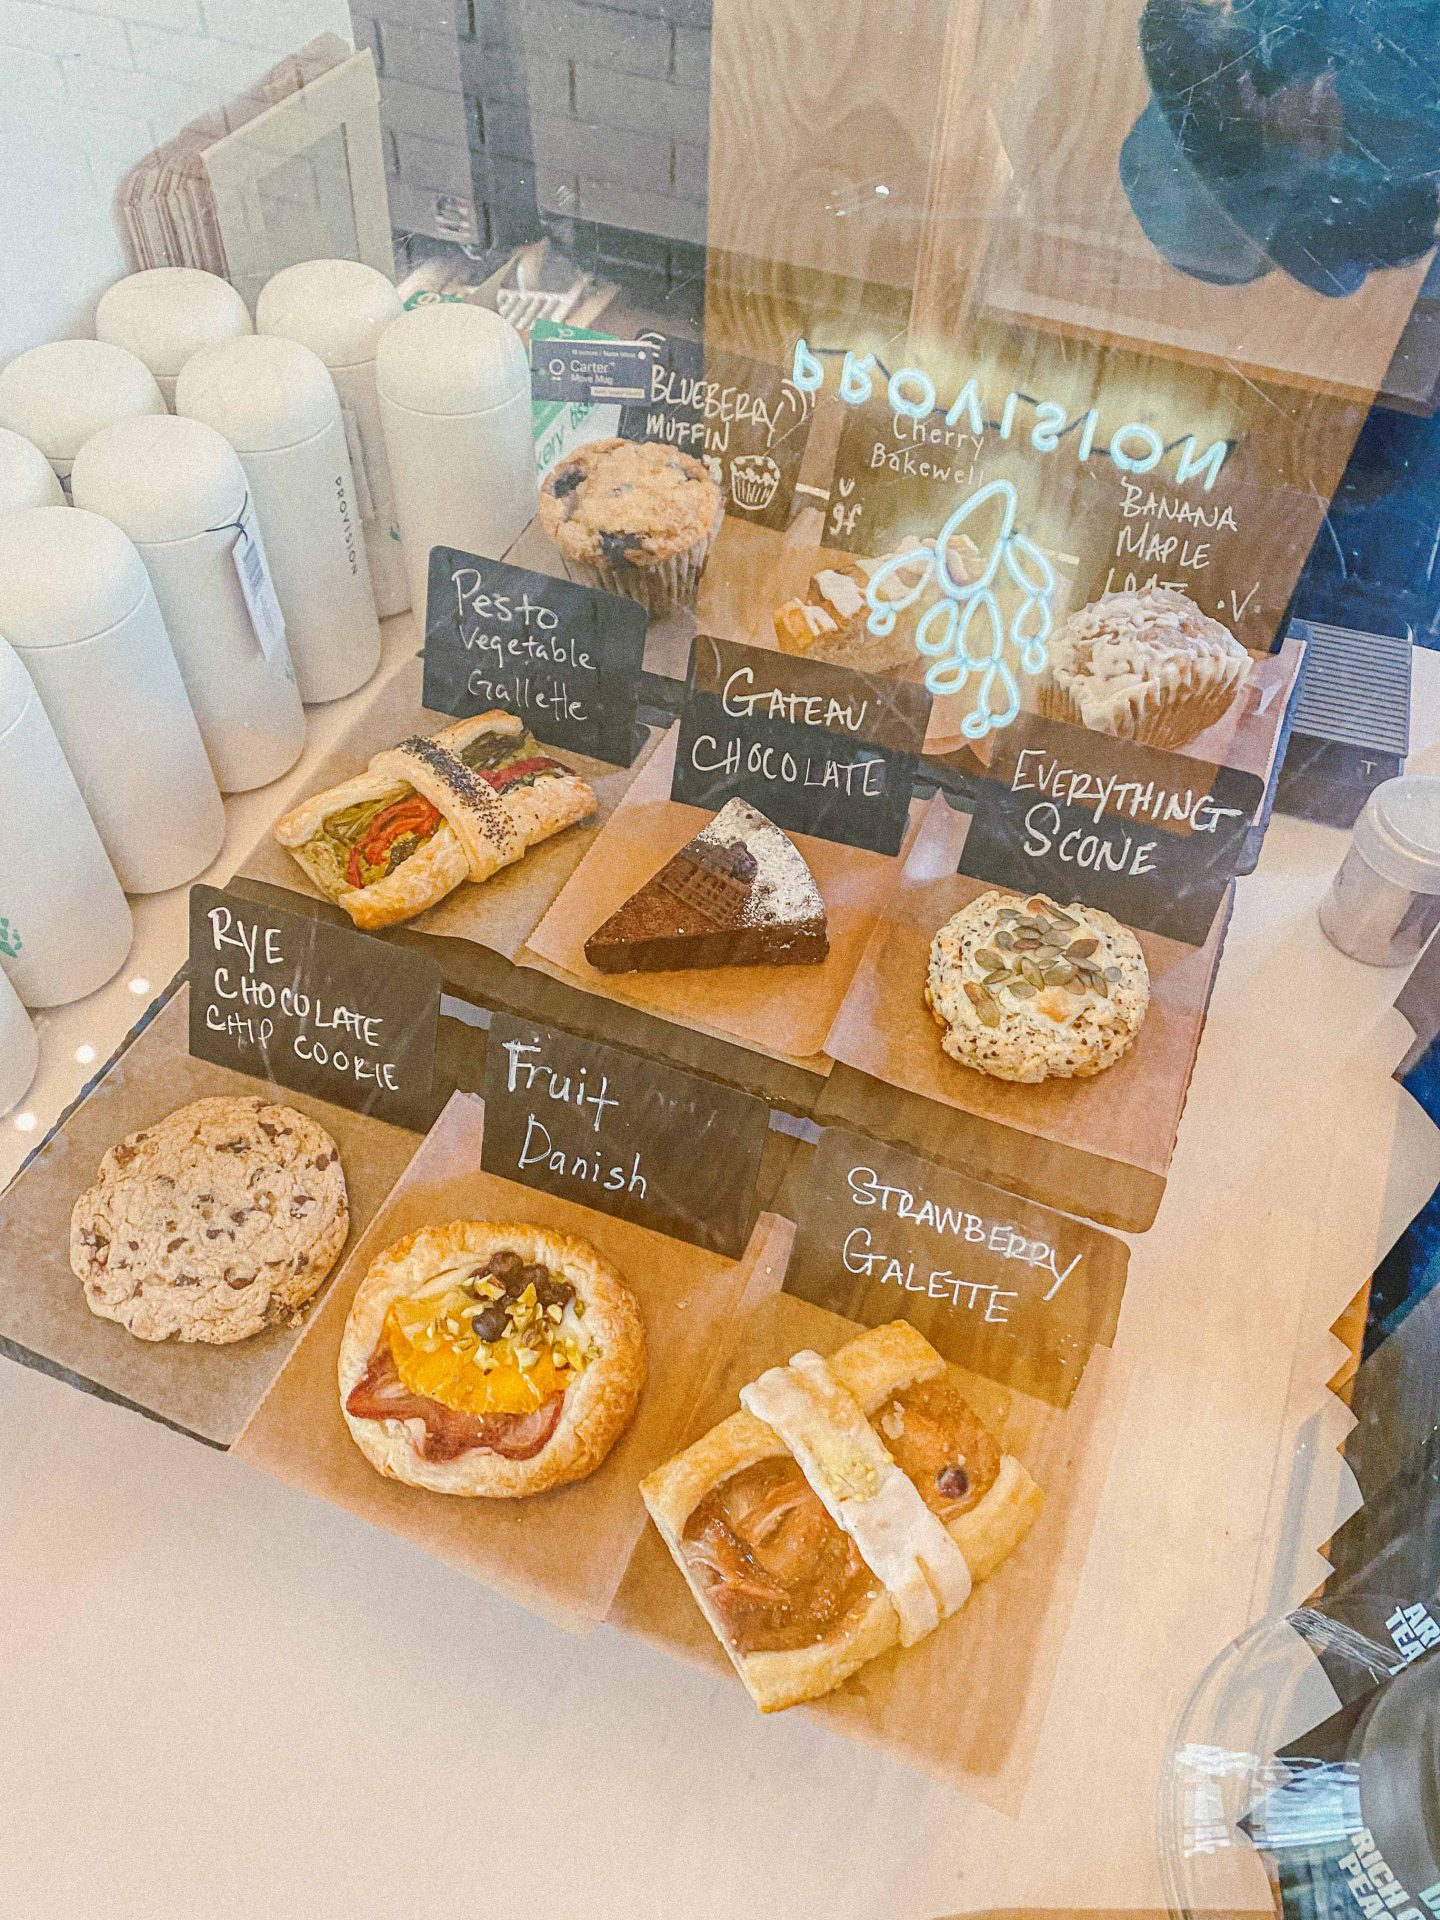 best coffee shops in scottsdale Arizona, provisions coffee scottsdale, Arizona coffee, travel blog, scottsdale travel guide, vegan gluten free banana maple loaf, lifestyle blogger, traveling things to do in scottsdale, summer travels